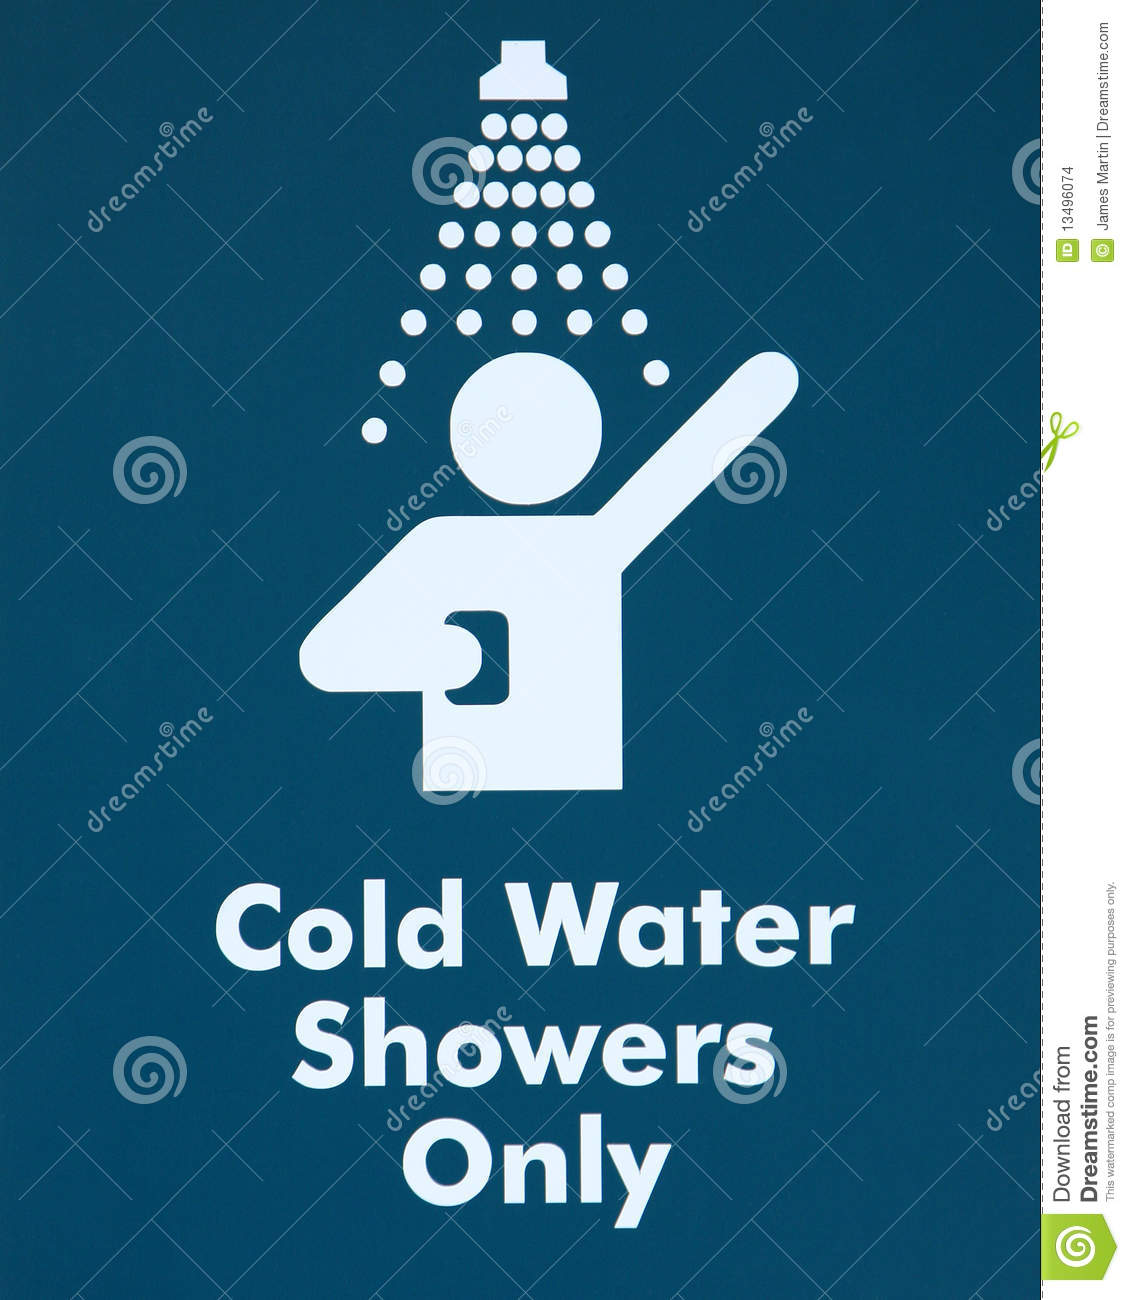 Cold Water Shower - sign stock photo. Image of hygiene - 13496074